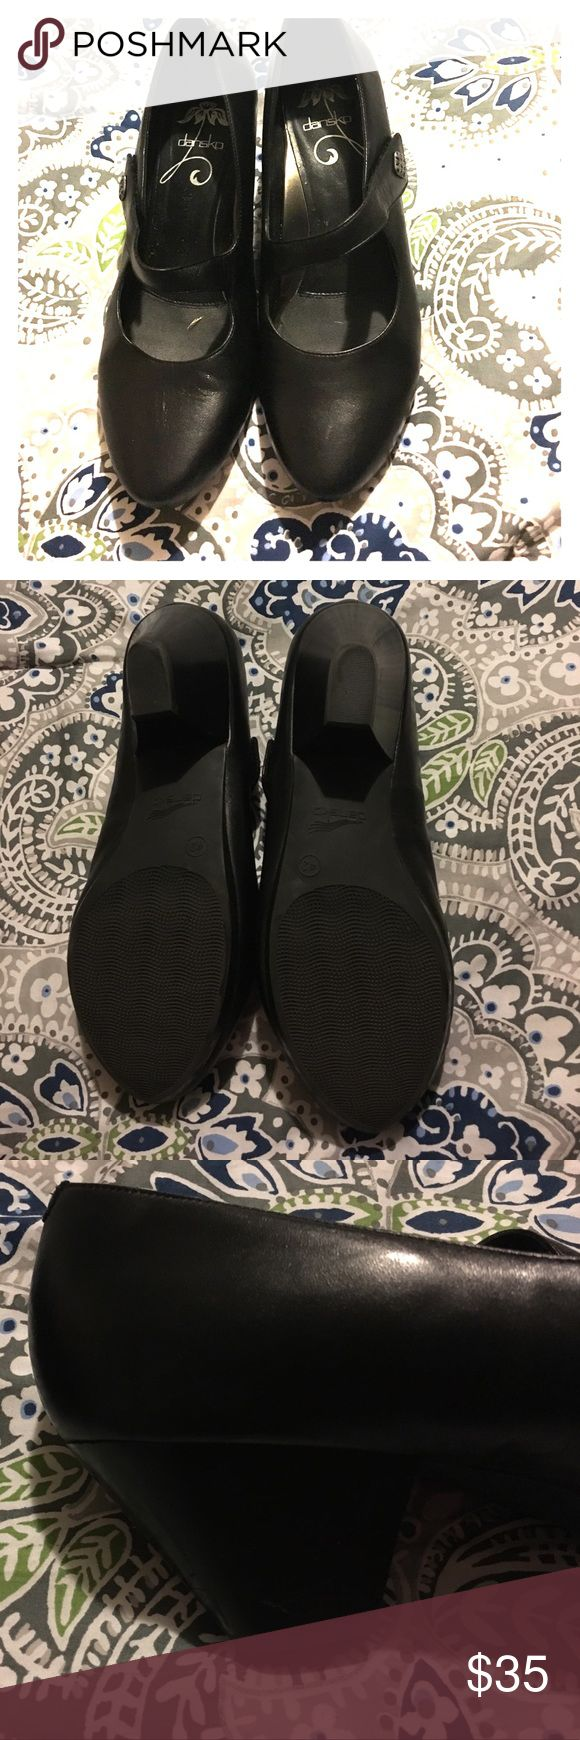 Barely Worn Dansko heeled Mary Janes Size 12 Danskos (International Size 42) barely worn! No scuffs on the leather.  Great condition, I just give up on heels!!  Heel height is approximately 1.5 to 2.0. Dansko Shoes Heels